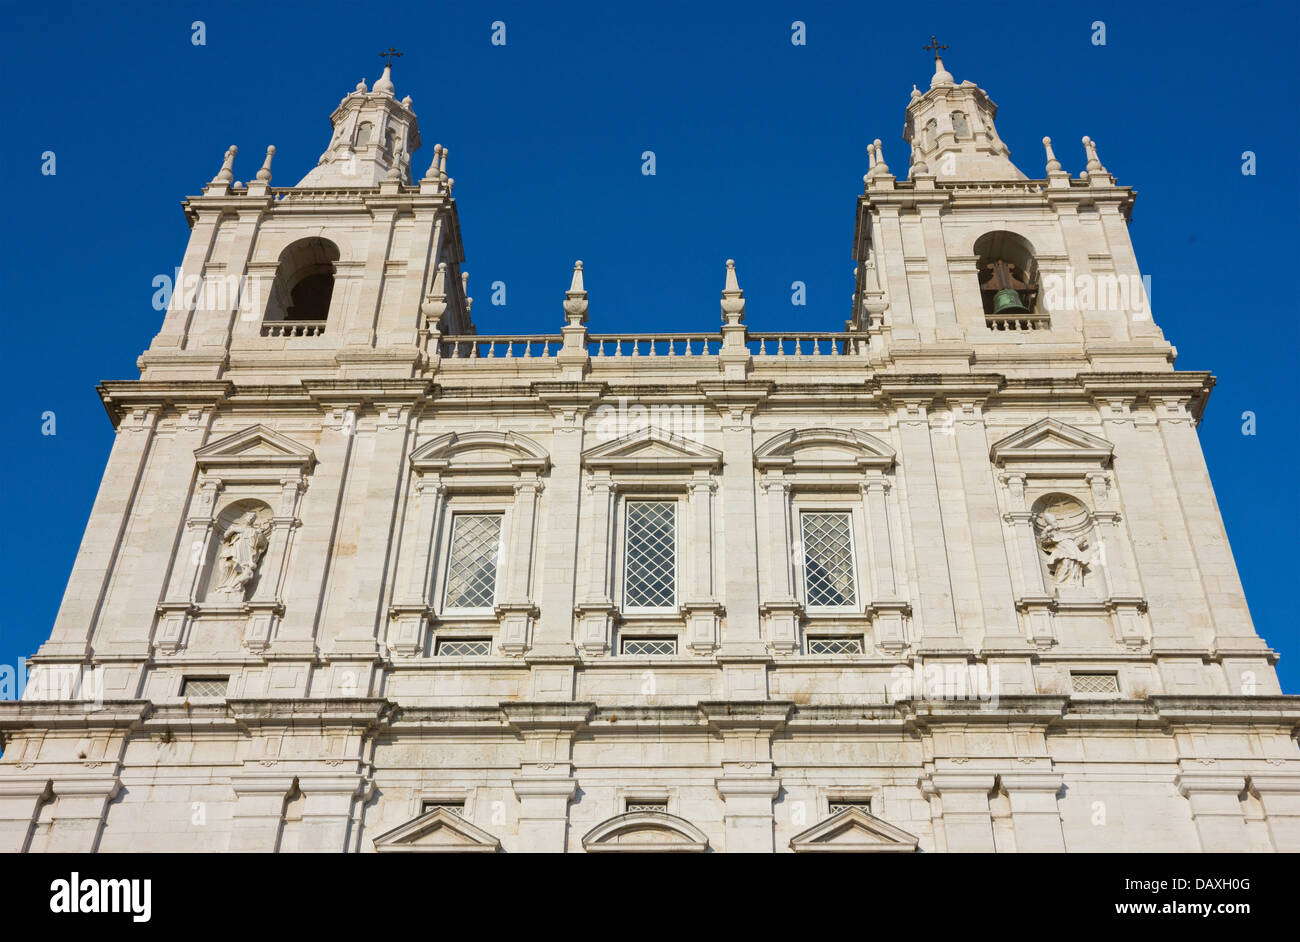 Monastery of Sao Vicente de Fora in Lisbon, Portugal. Facade shot over clear blue sky. Stock Photo